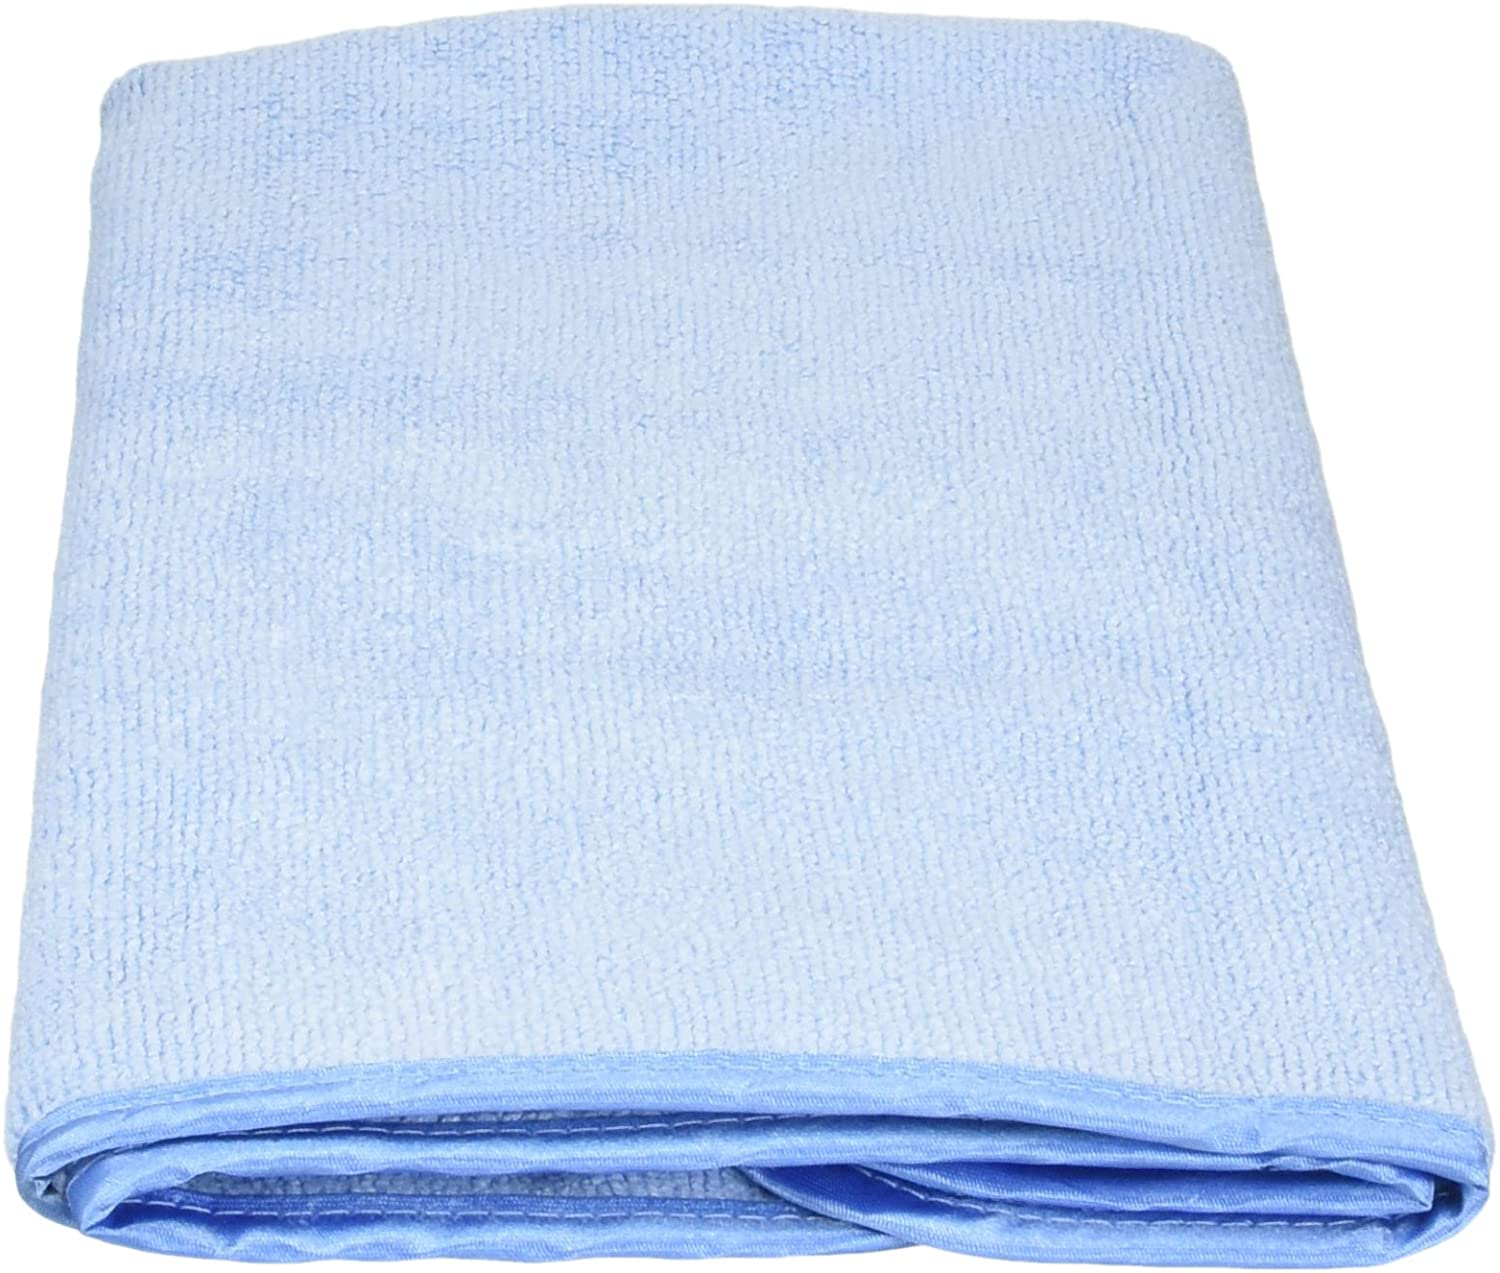 SM Arnold m Arnold Heavy Plush Cleaning Towel with Piped Edging, Large, Blue